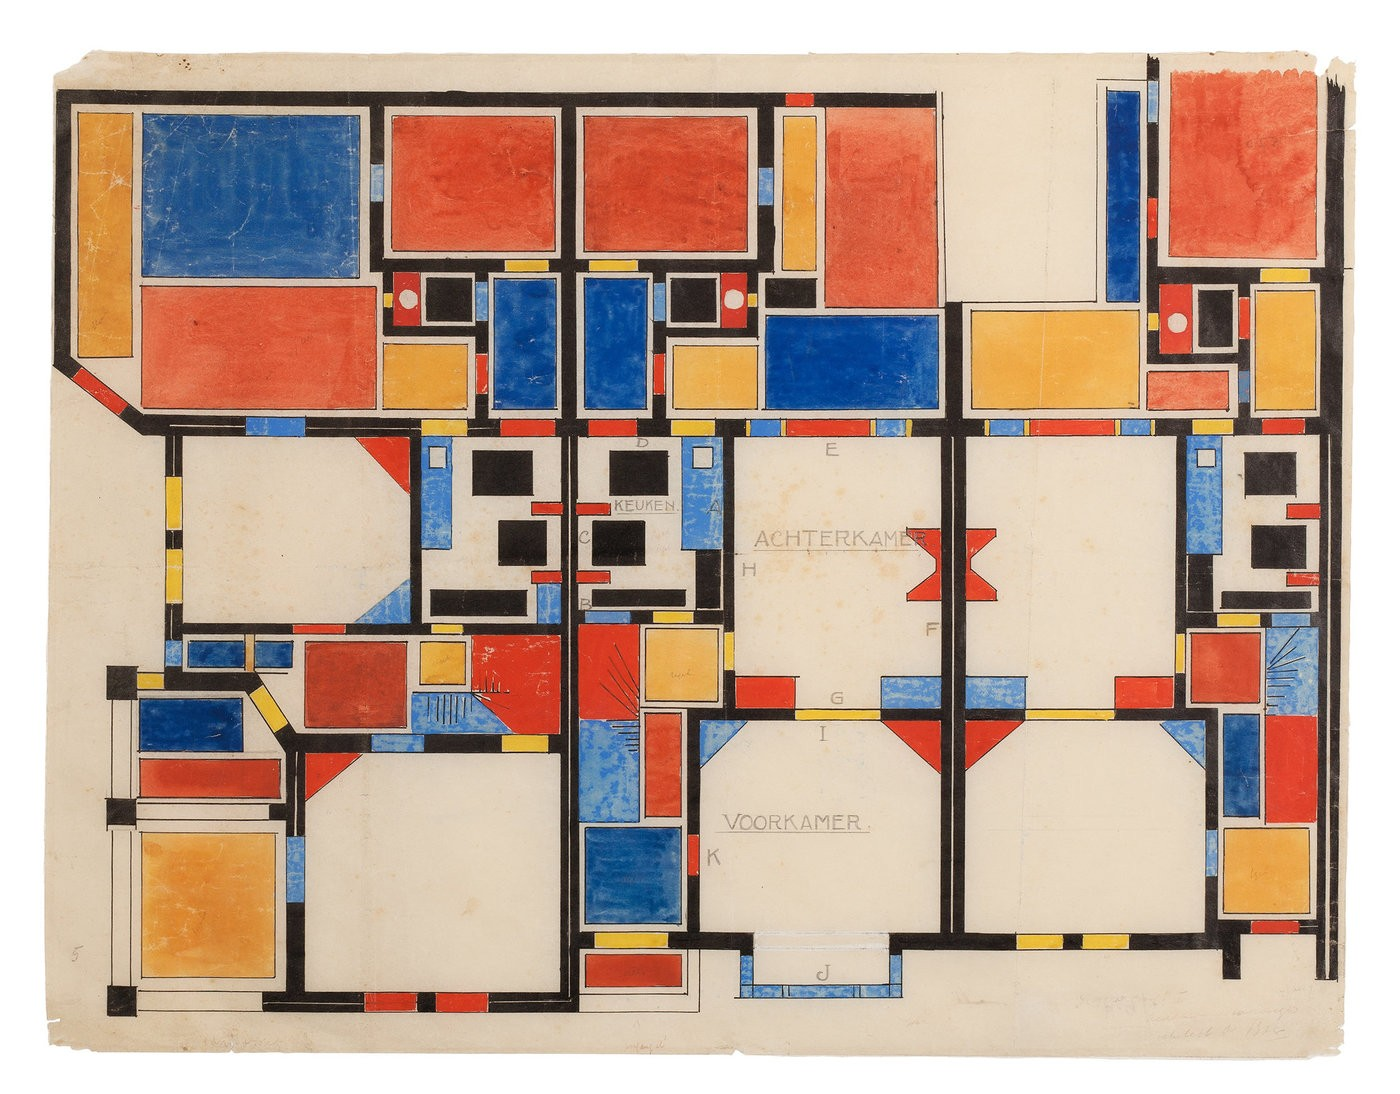 Medium fig. 3 colour composition ii for ground floor  theo van doesburg  1921.  museum dr8888